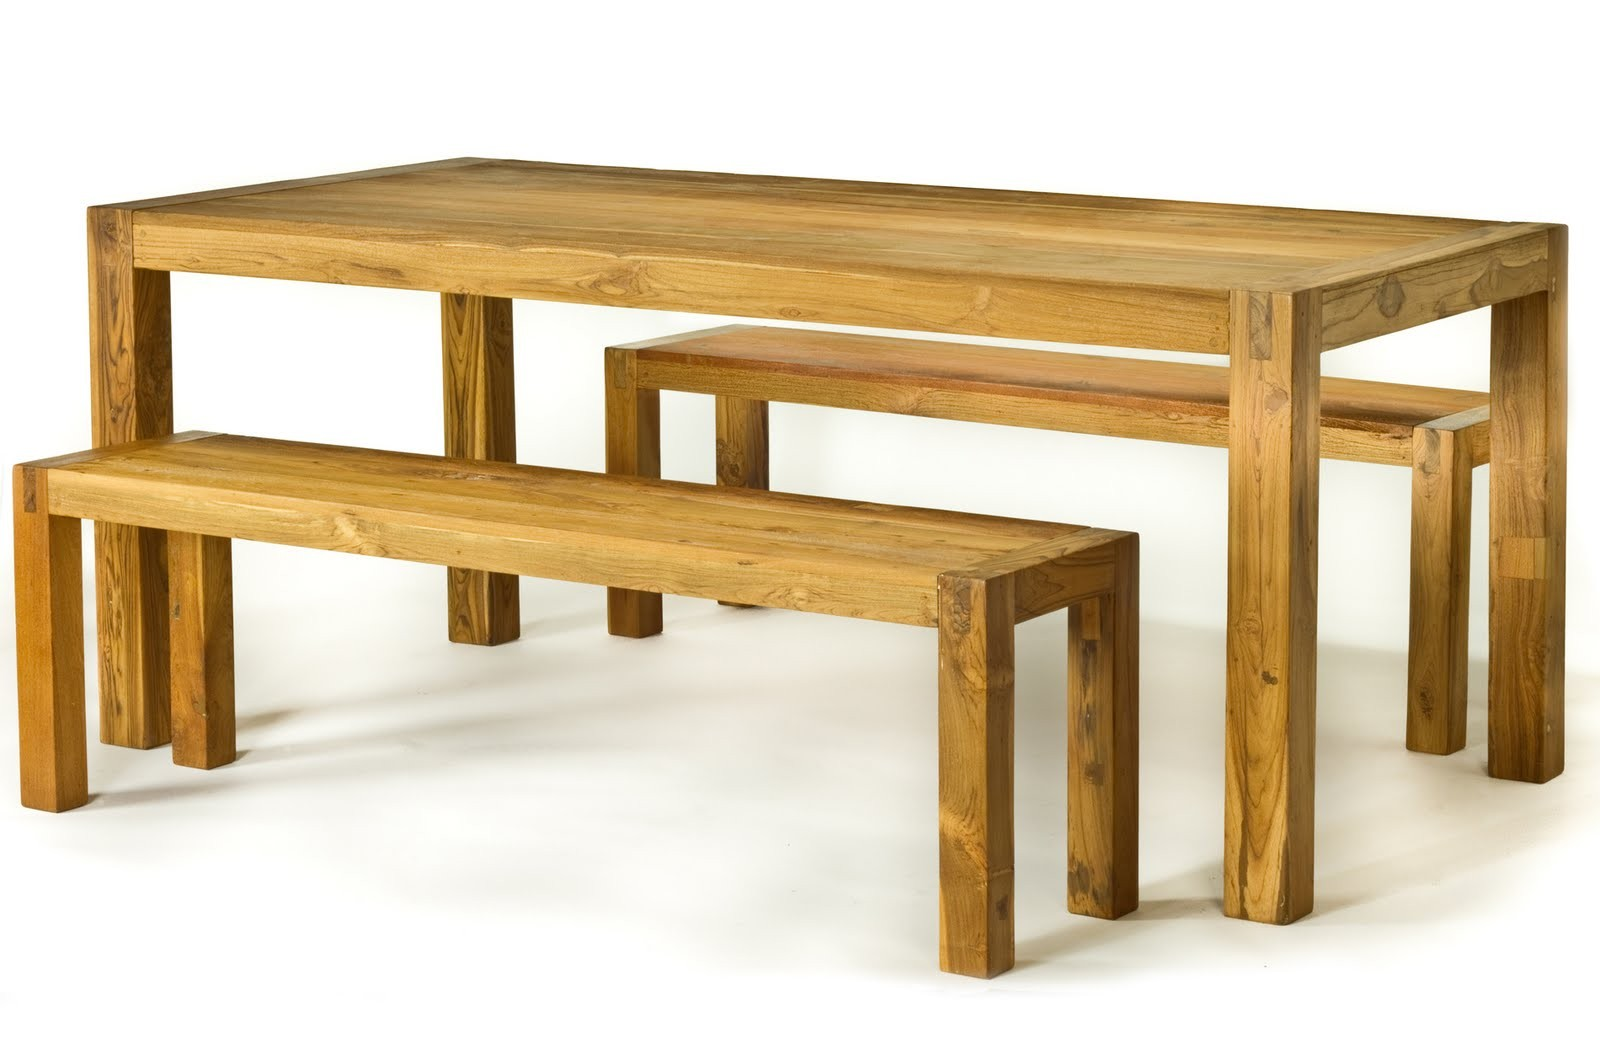 Baby green reclaimed wood dining tables - Dining table images ...